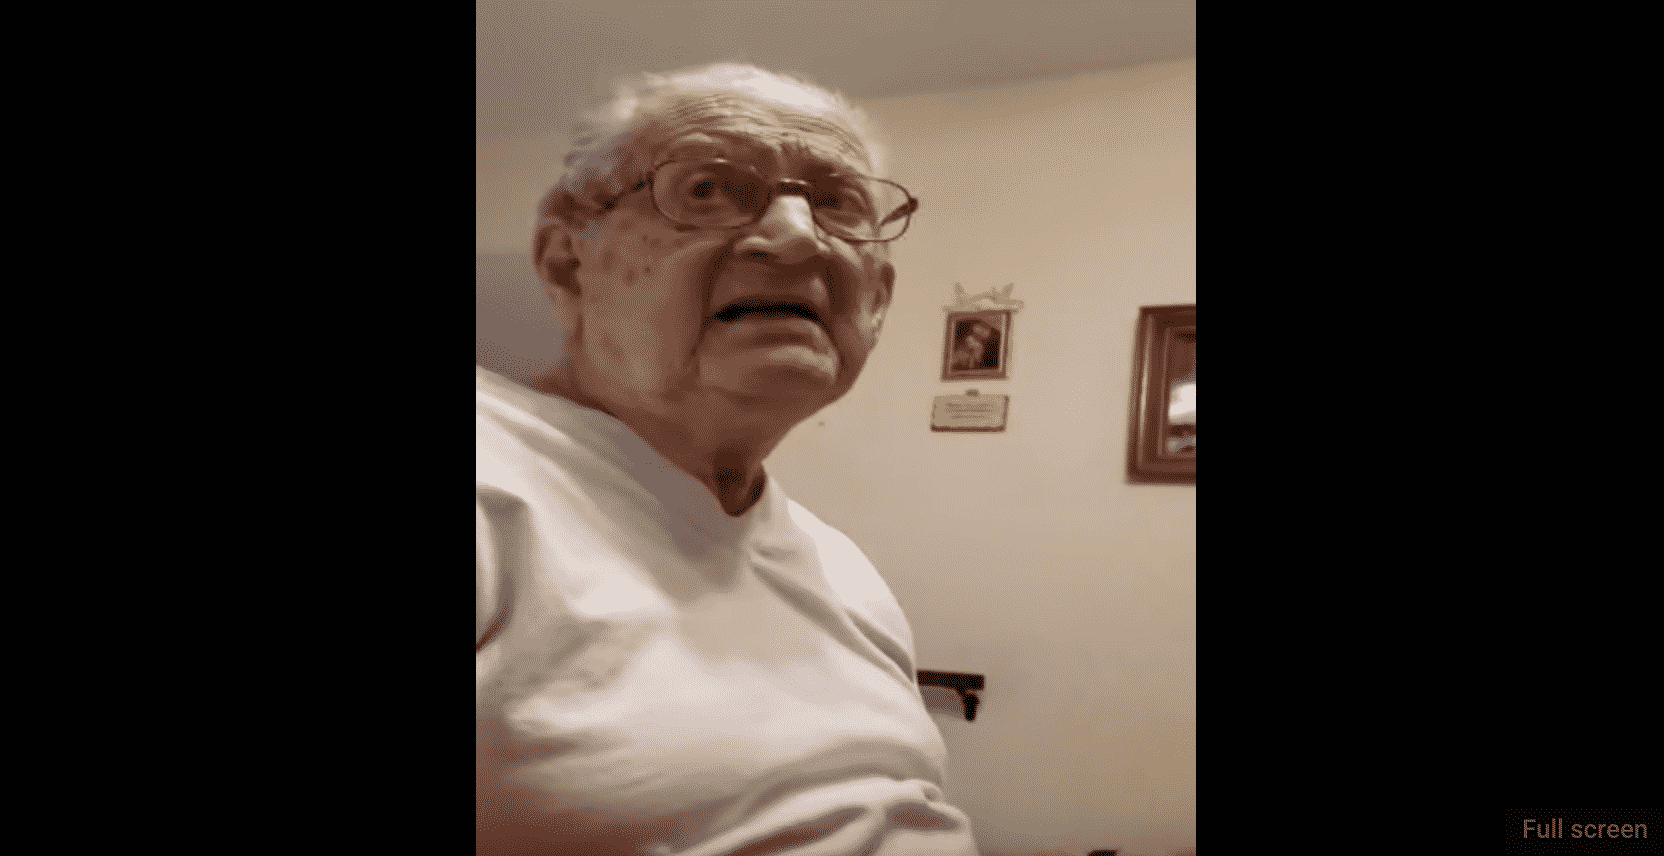 98-year-old man